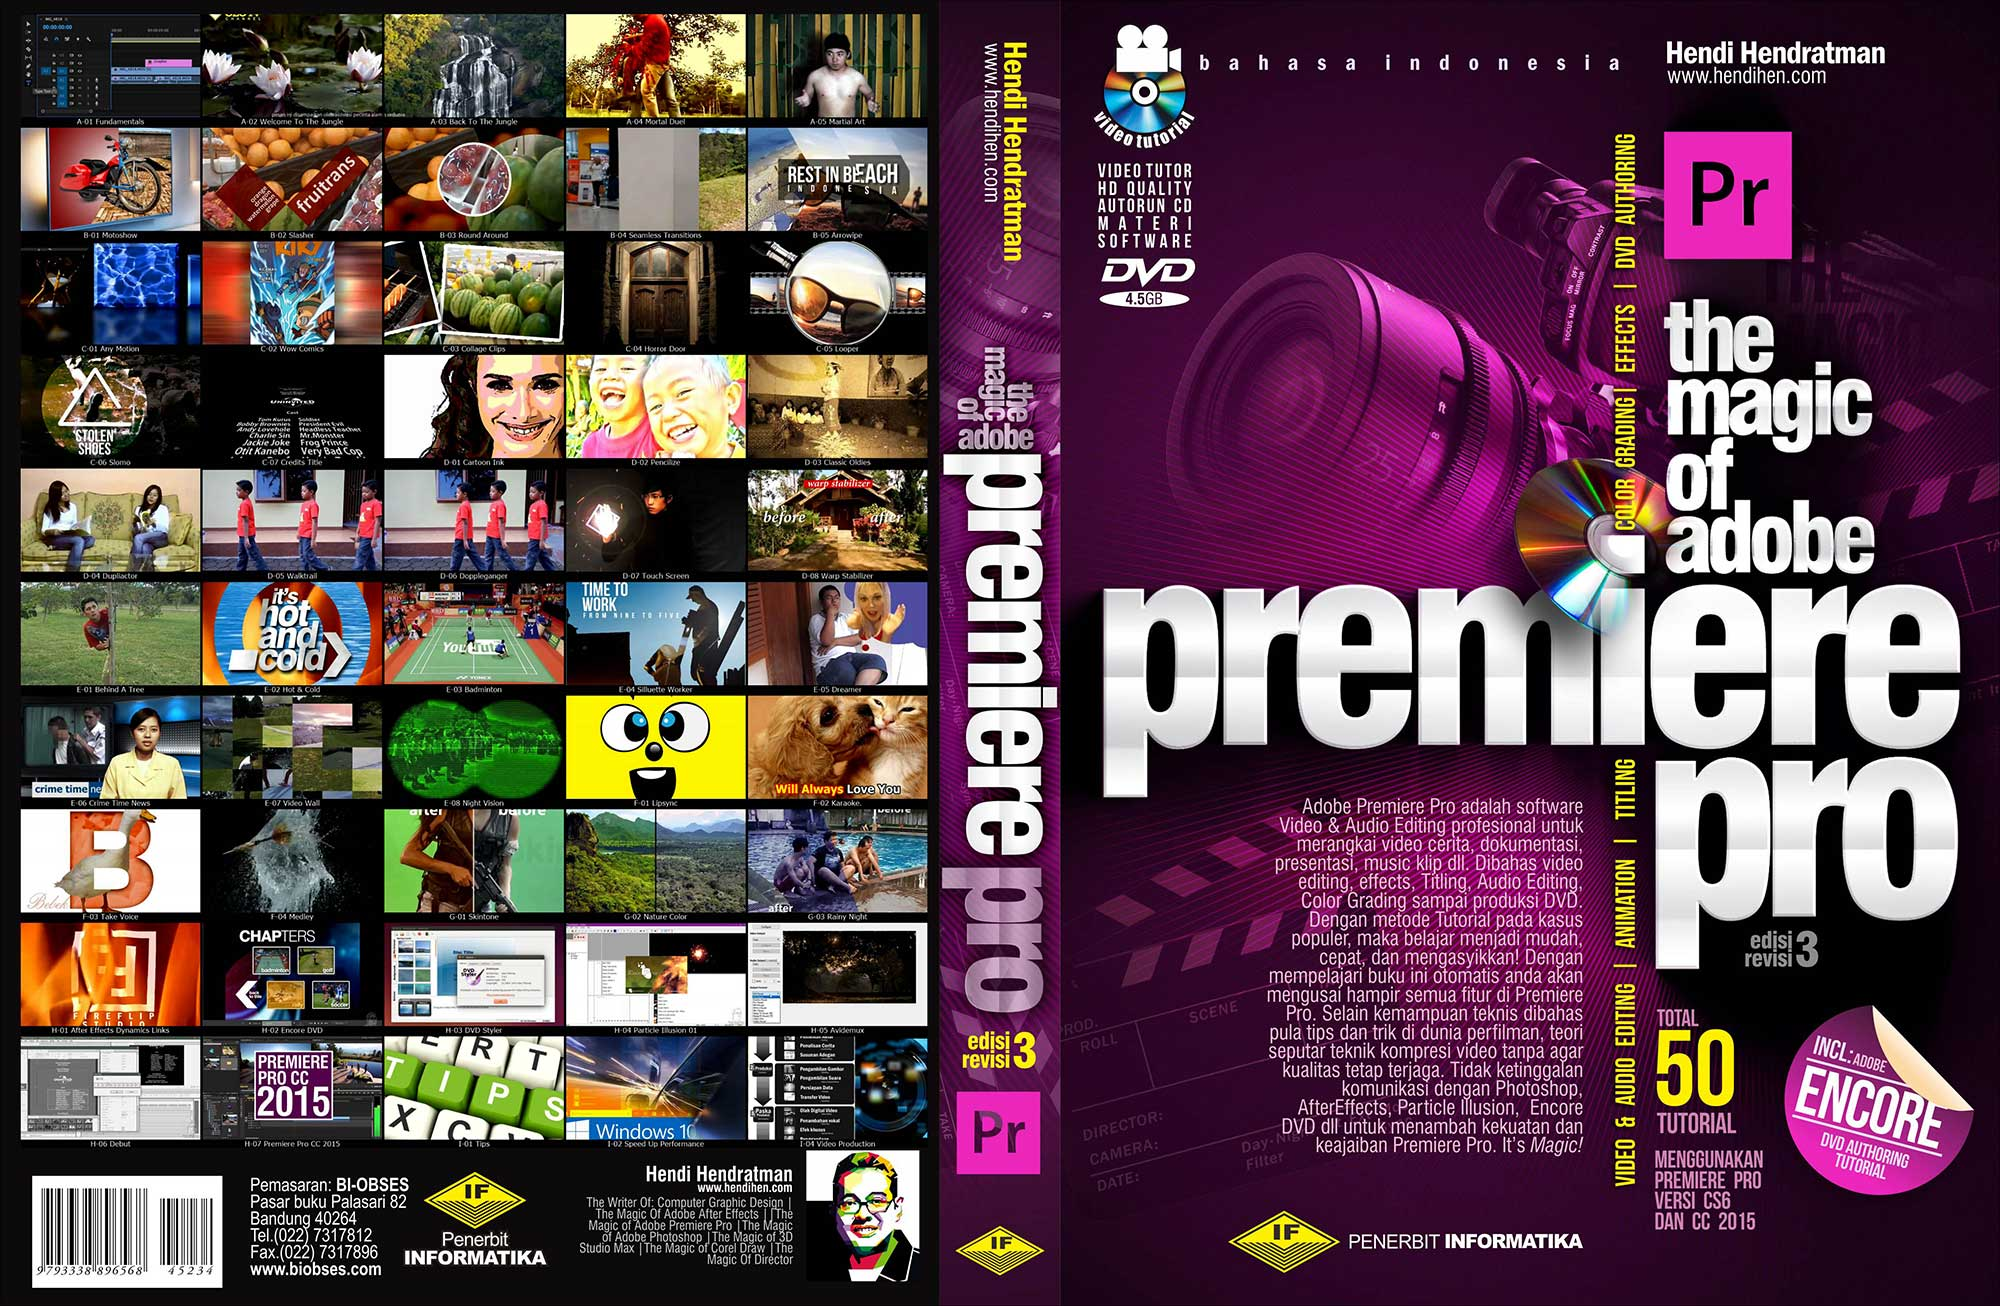 Tutorial adobe premiere pro pdf bahasa indonesia